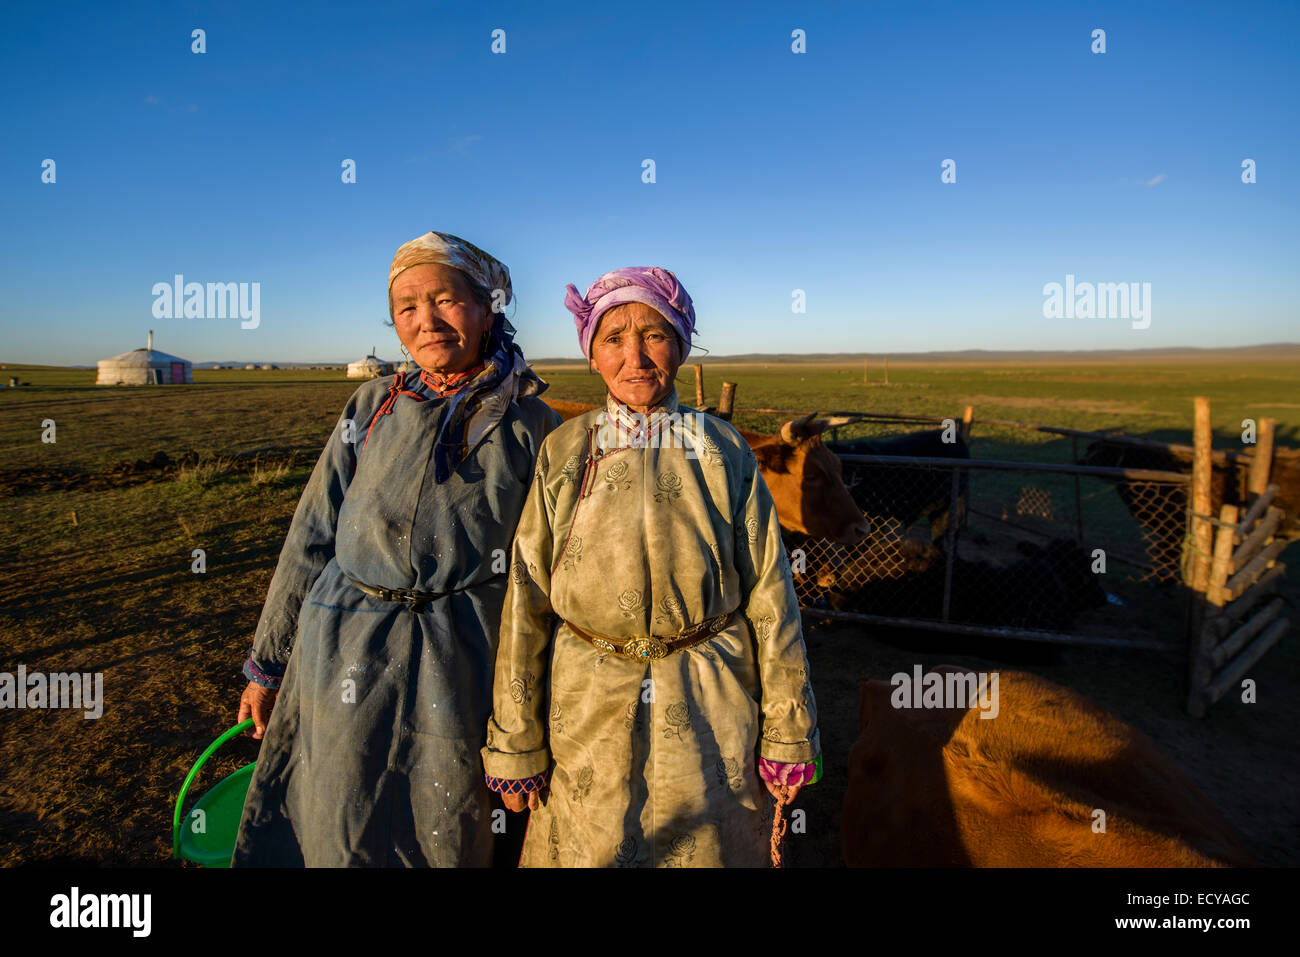 Mongolian nomad women milking cows on the steppe, Mongolia Stock Photo